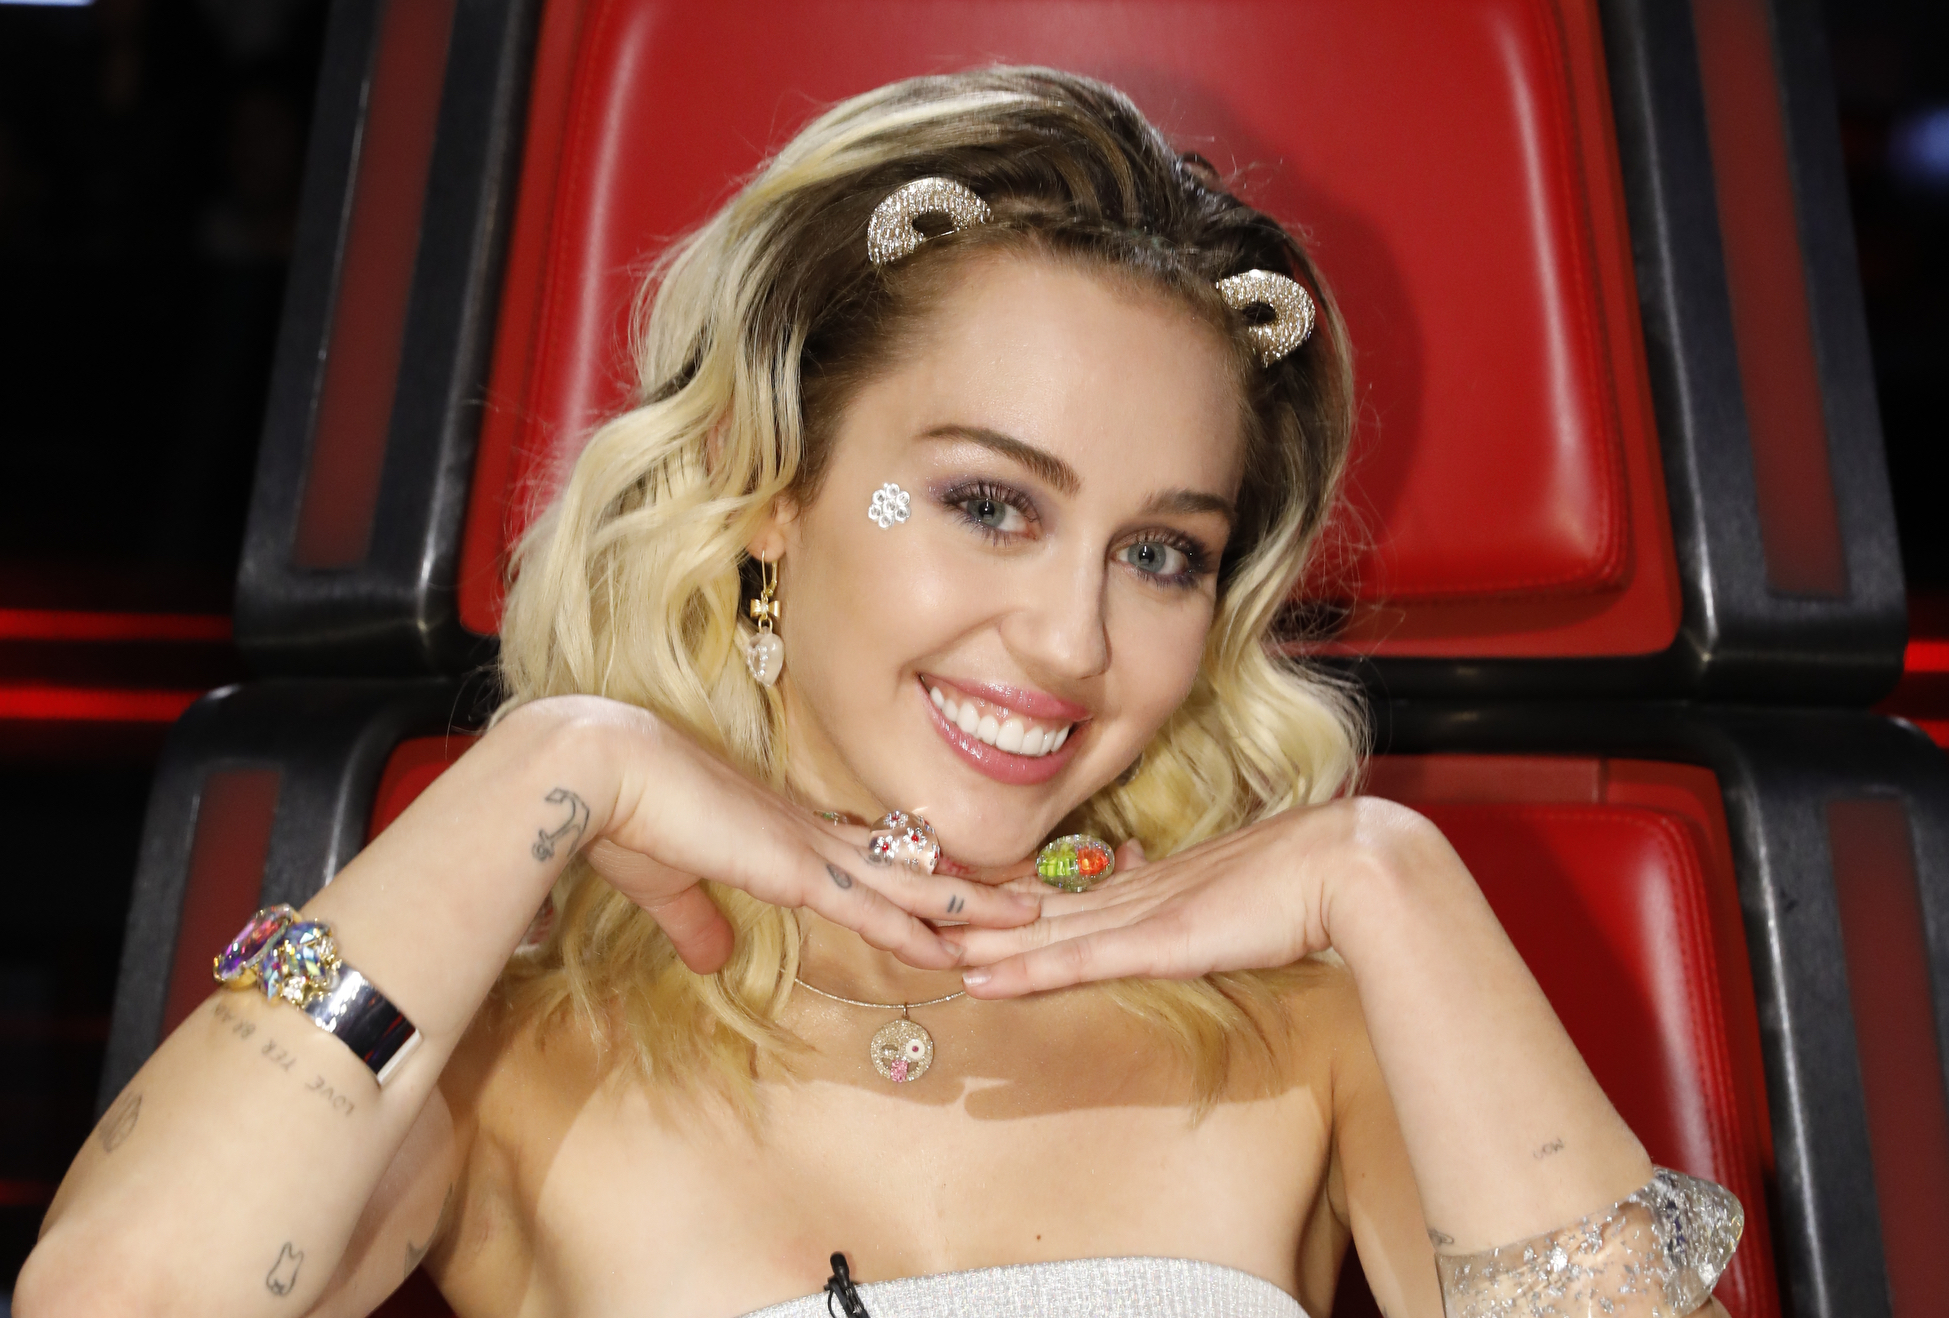 Miley Cyrus used an outrageous dress to transform into a ball of holiday tinsel